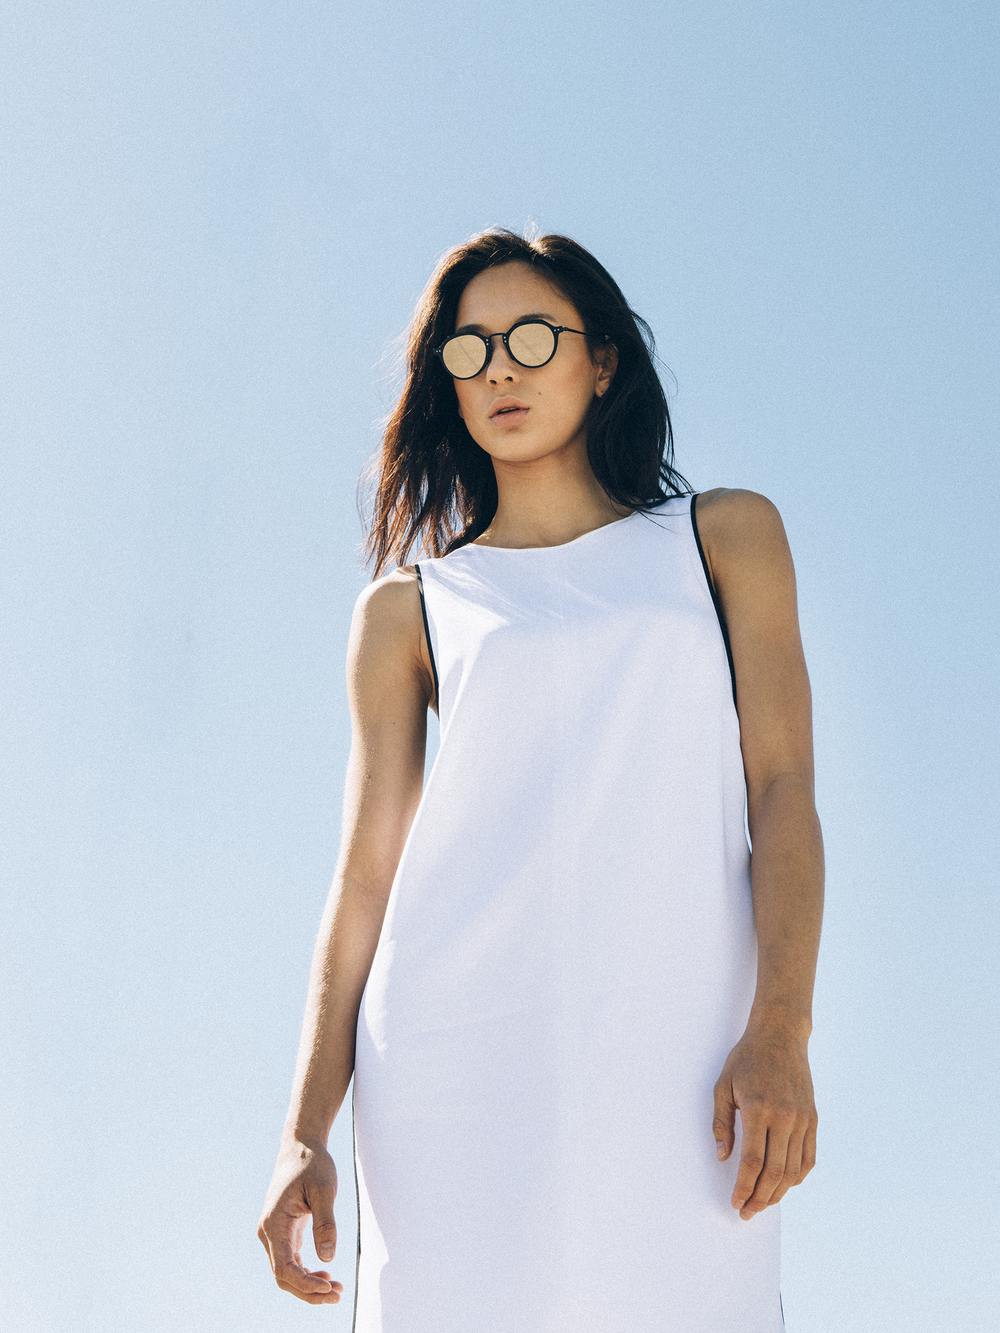 BlackOptical-Summer-2016-02.jpg